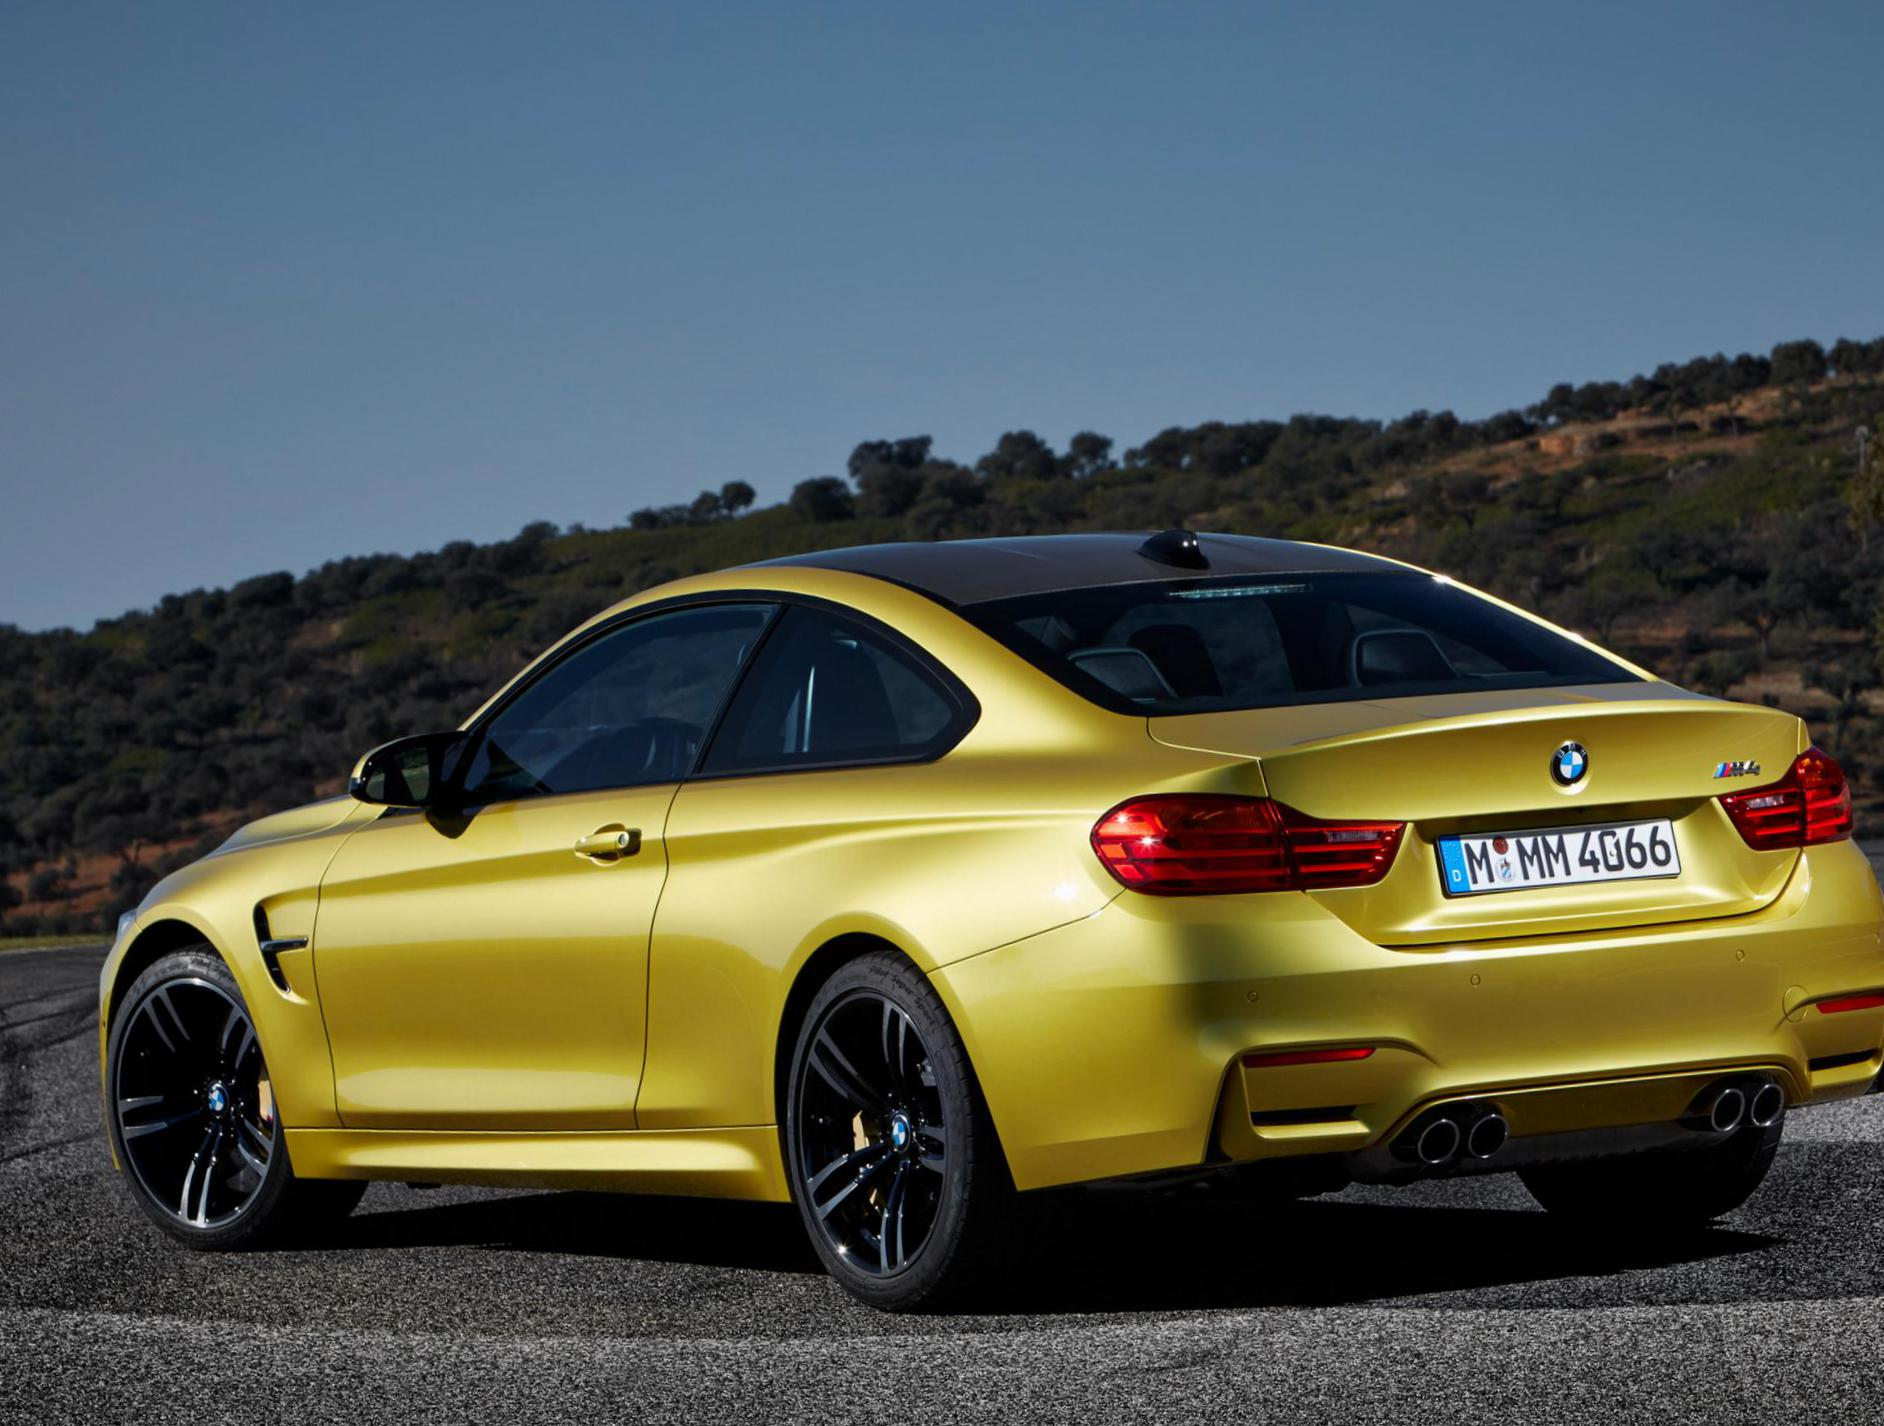 BMW M4 Coupe (F82) models hatchback